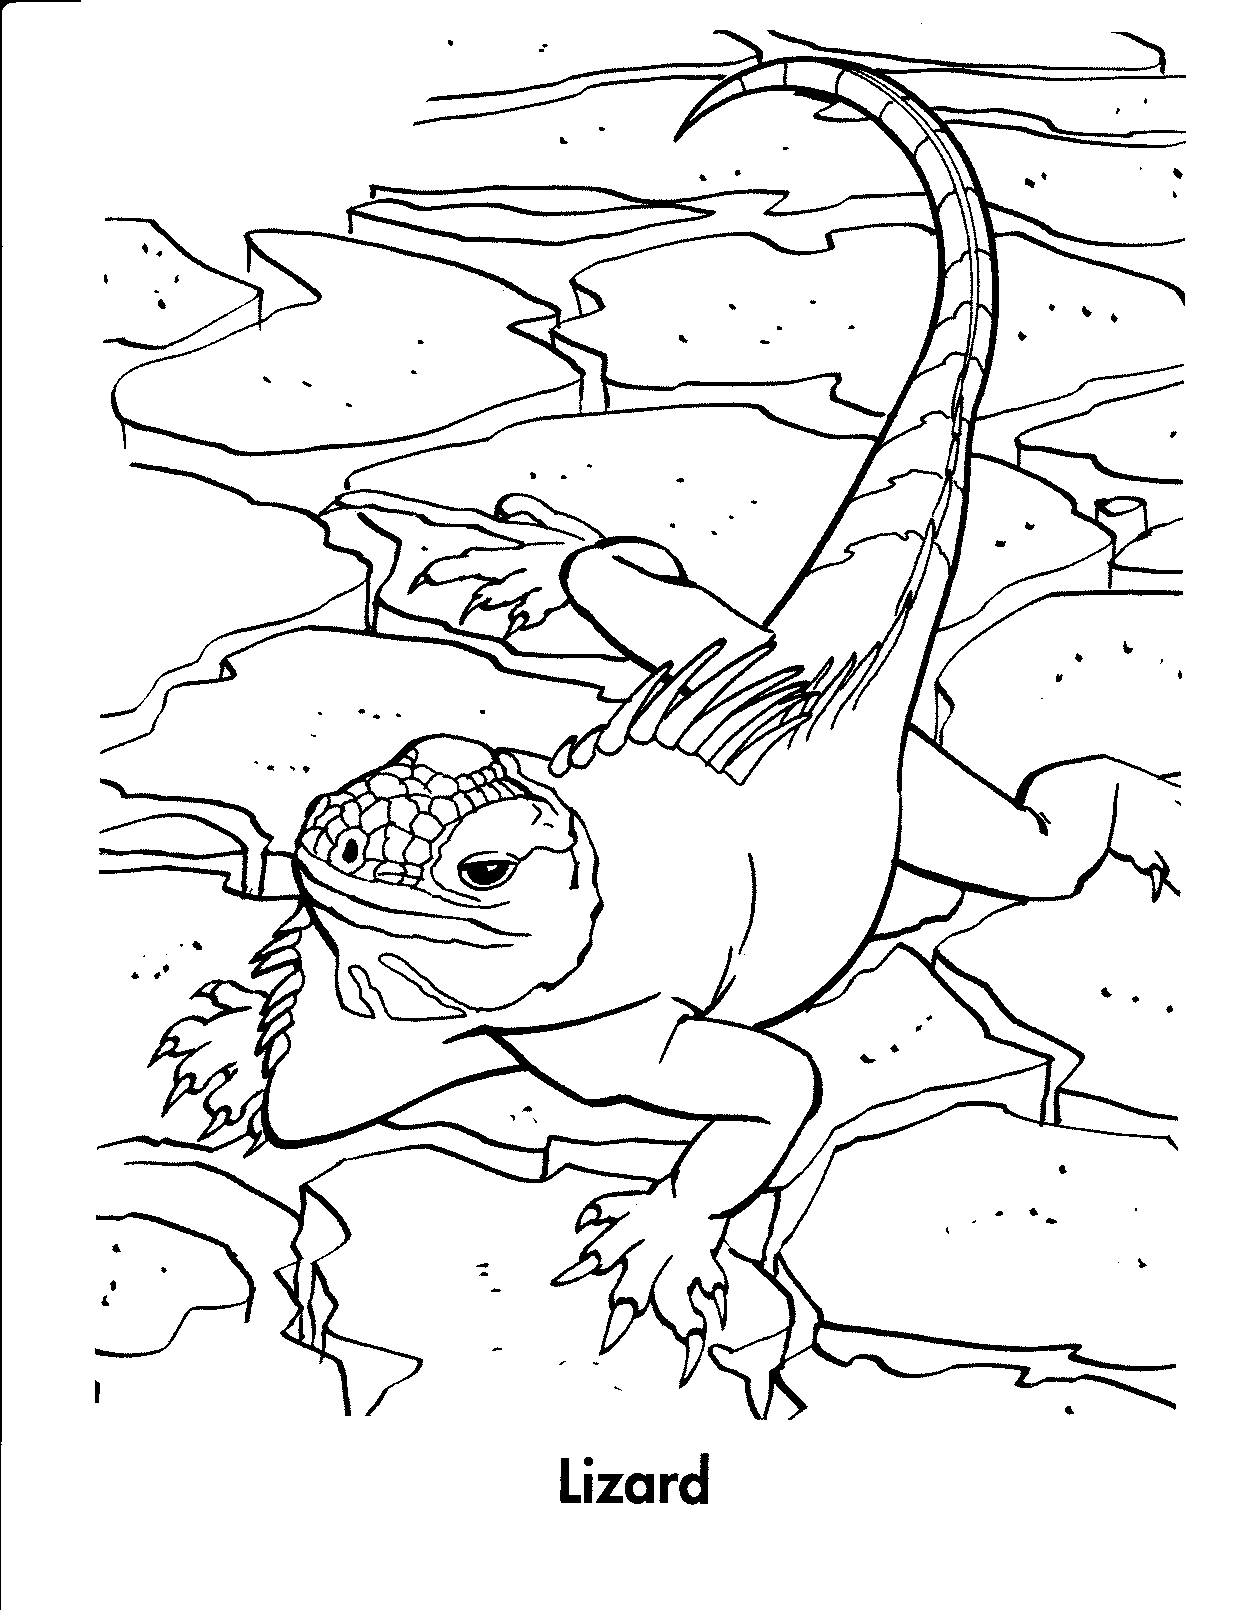 lizard picture to color free lizard coloring pages to lizard color picture